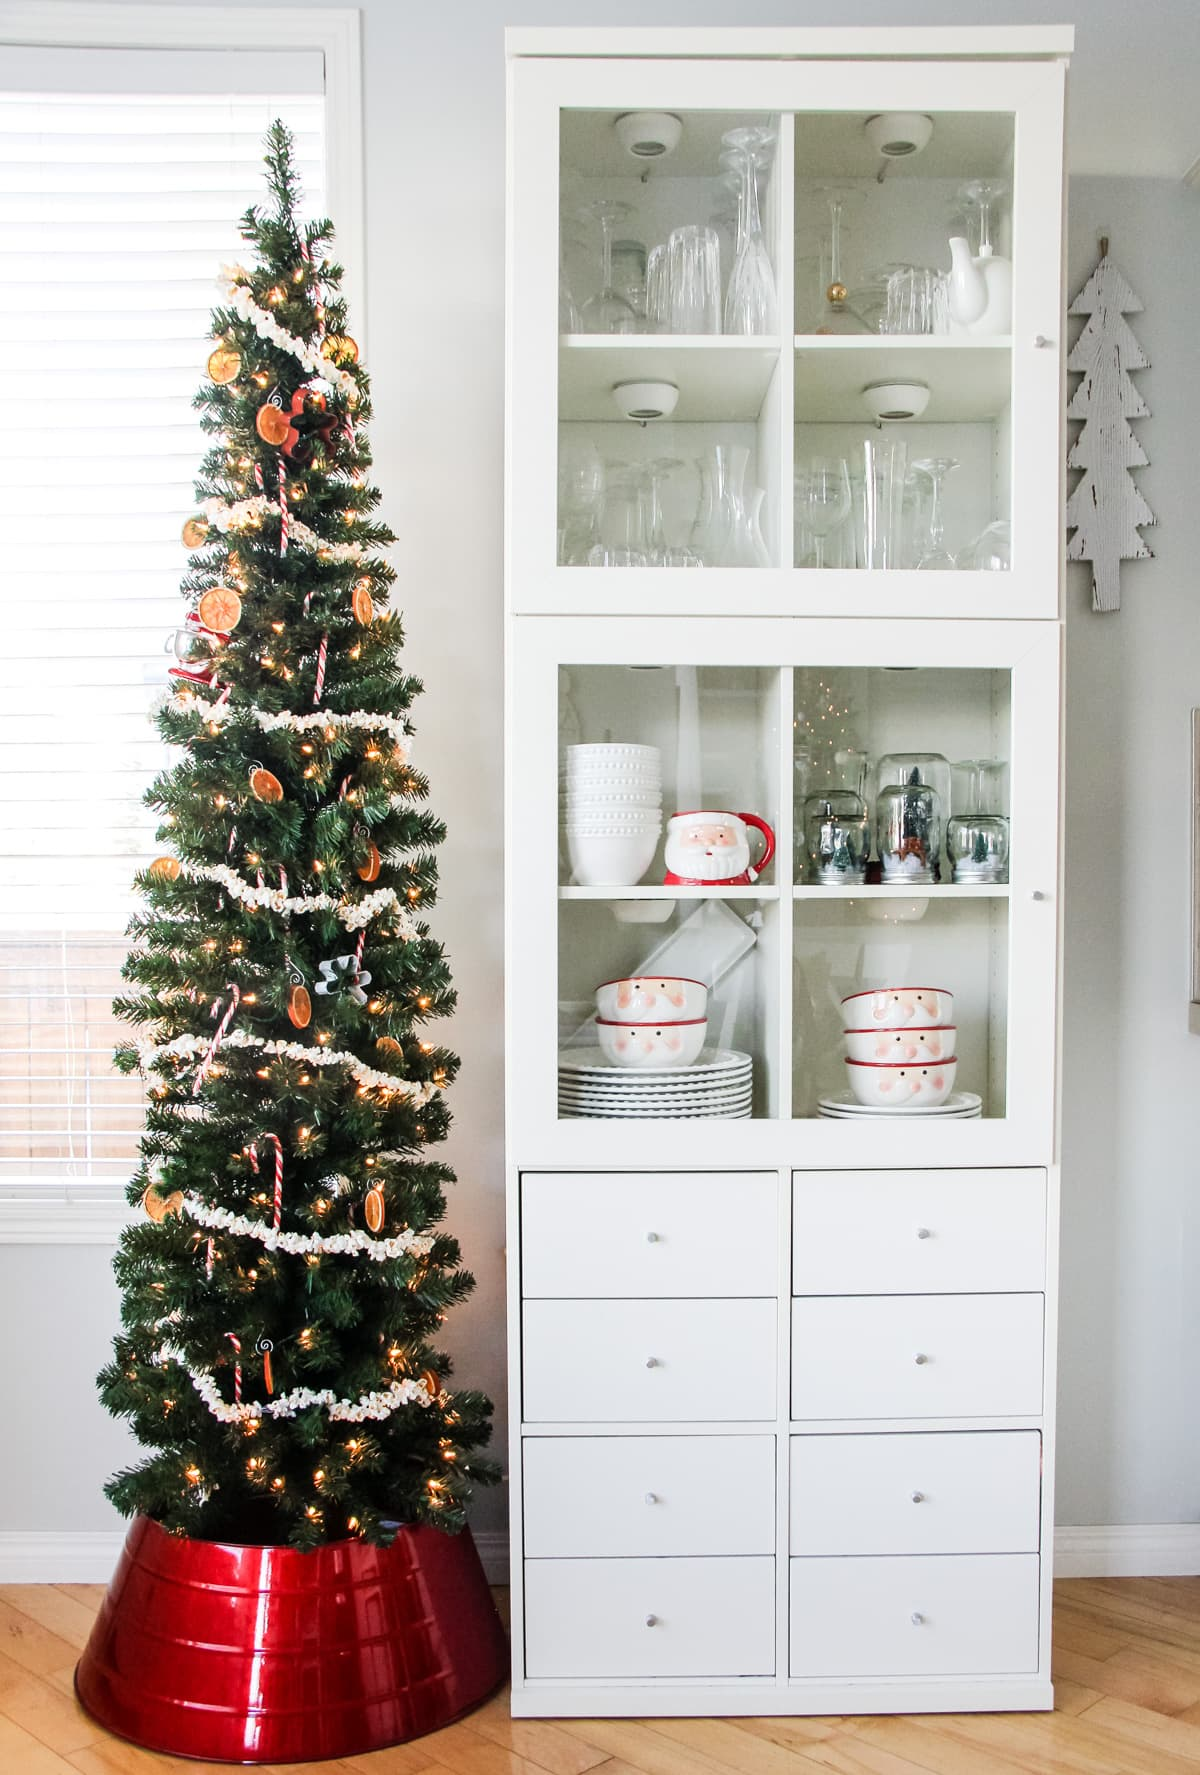 A food-inspired Christmas tree in the kitchen!